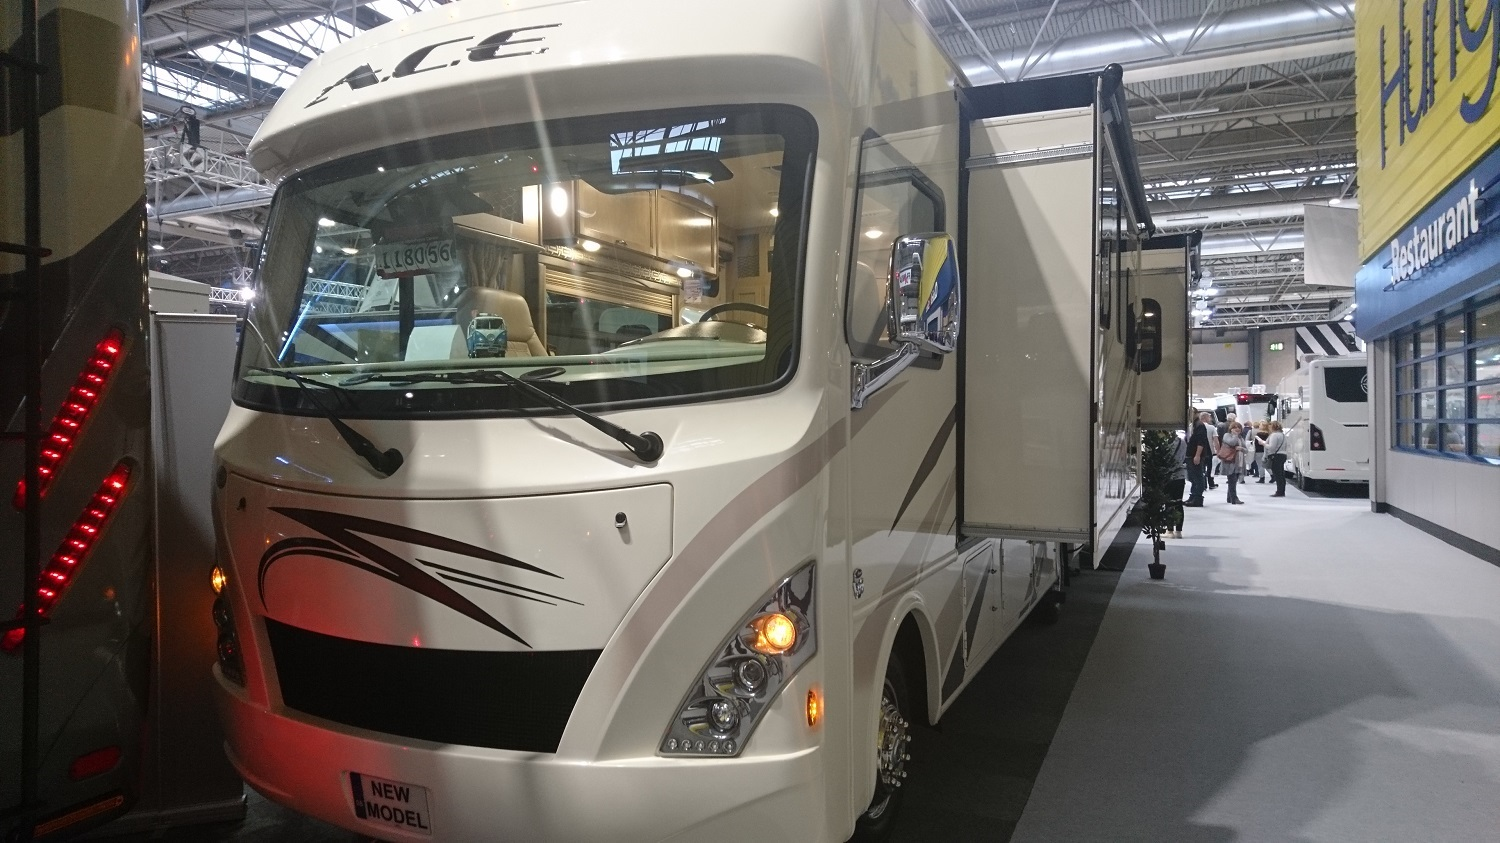 HGV sized motorhome with slide out sides